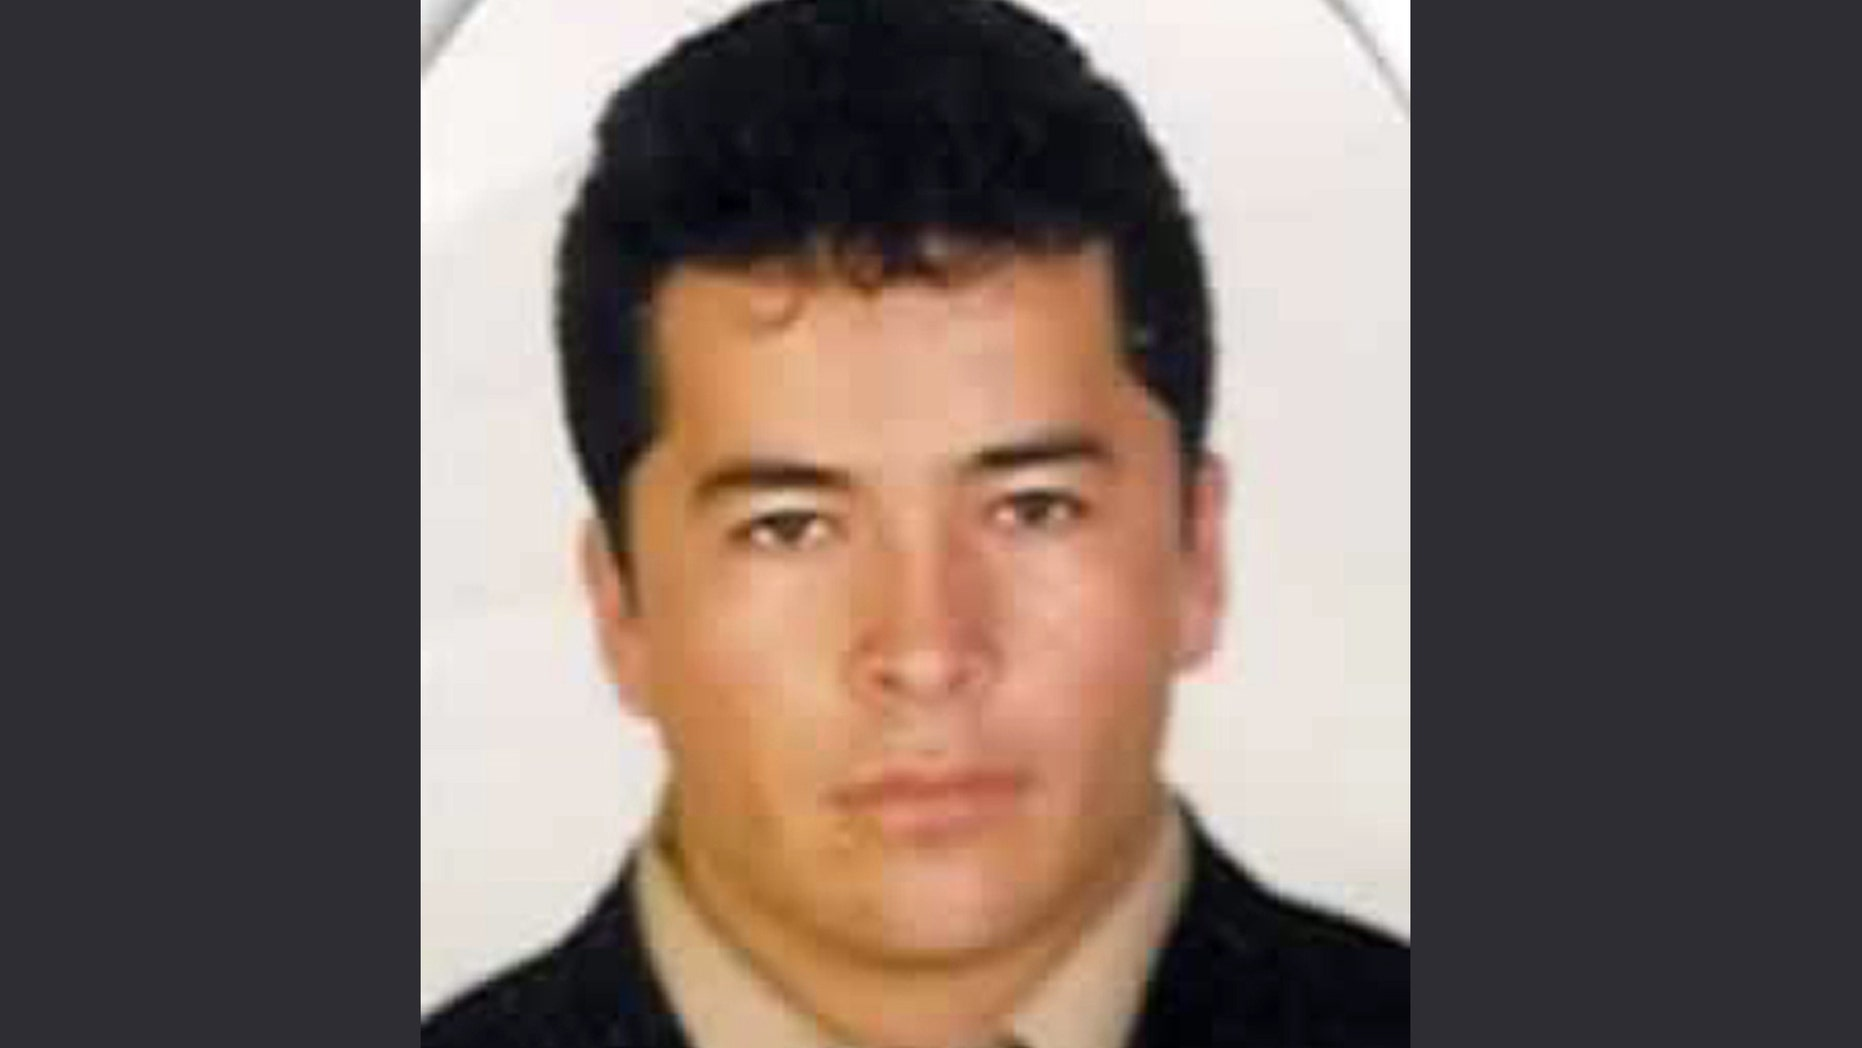 FILE - This undated file photo, downloaded from the Mexico's Attorney General's Office most wanted criminals webpage on Nov. 2, 2010, shows alleged Zeta drug cartel leader and founder Heriberto Lazcano Lazcano in an undisclosed location. (AP Photo/Mexico's Attorney General's Office, file)